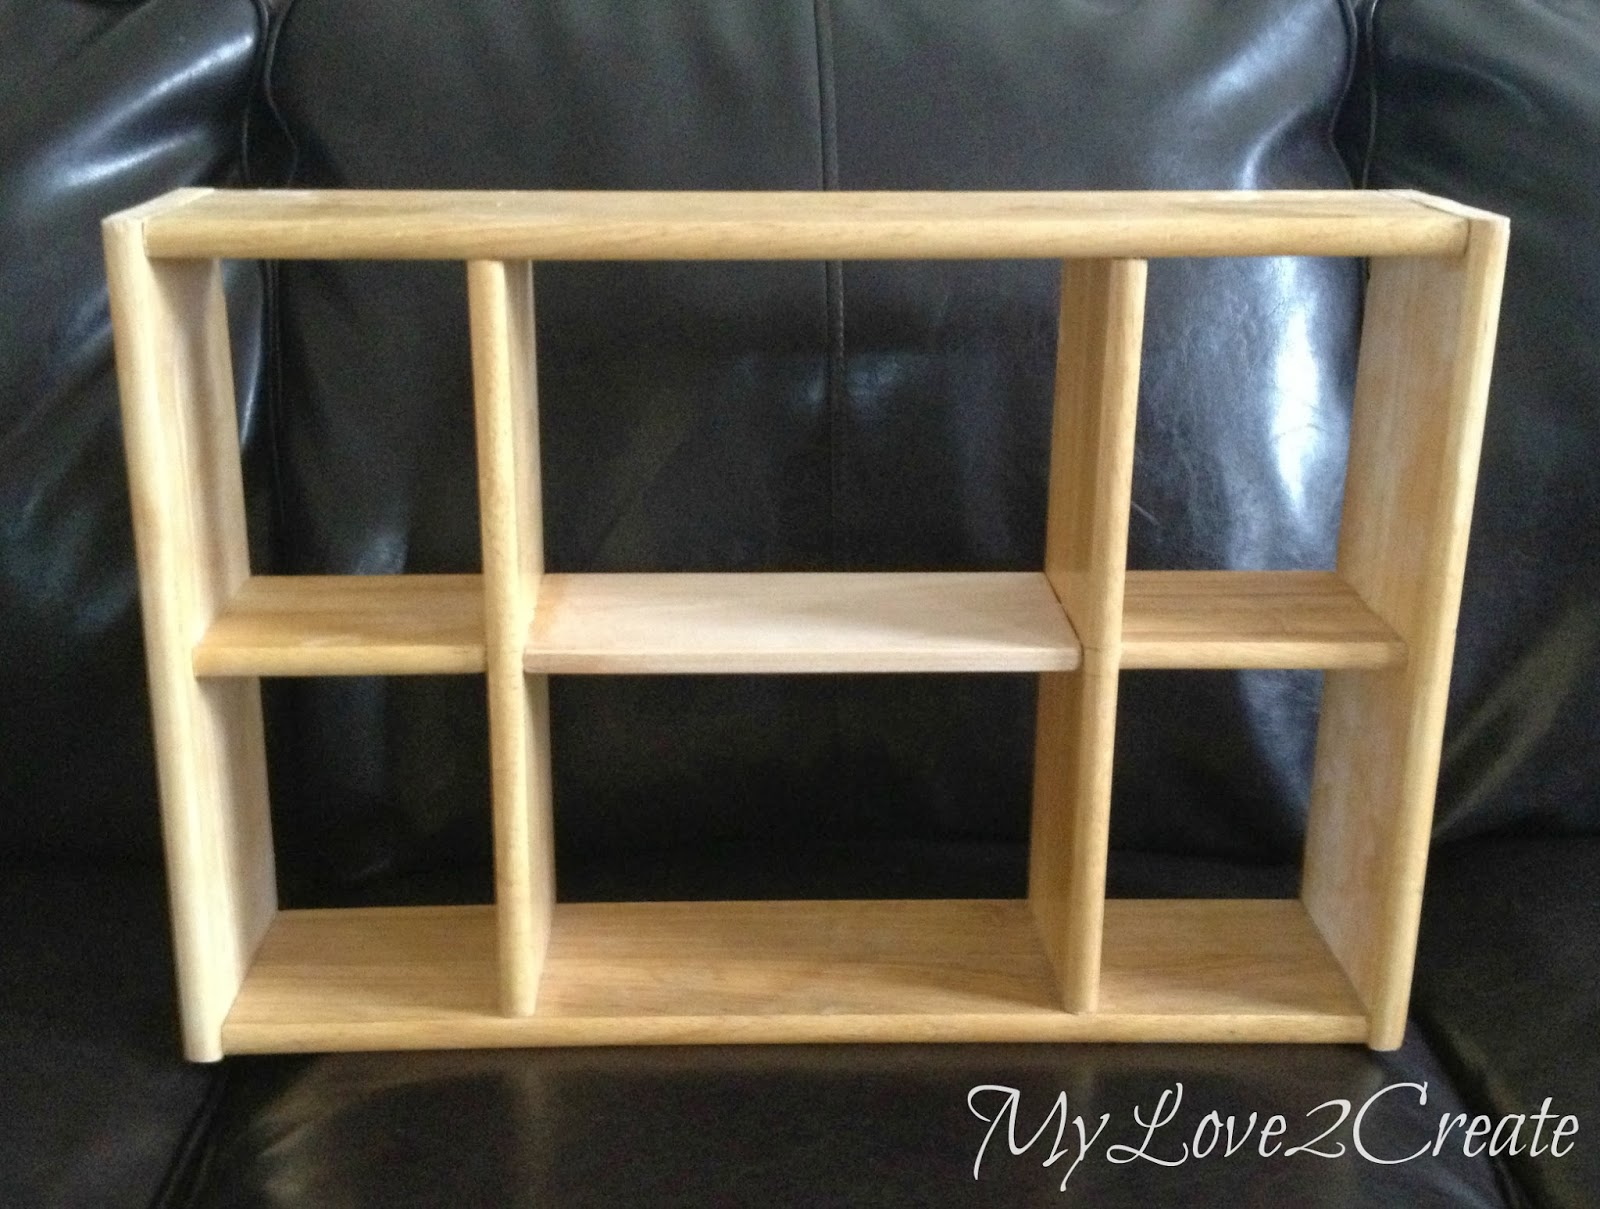 shelf with new divider